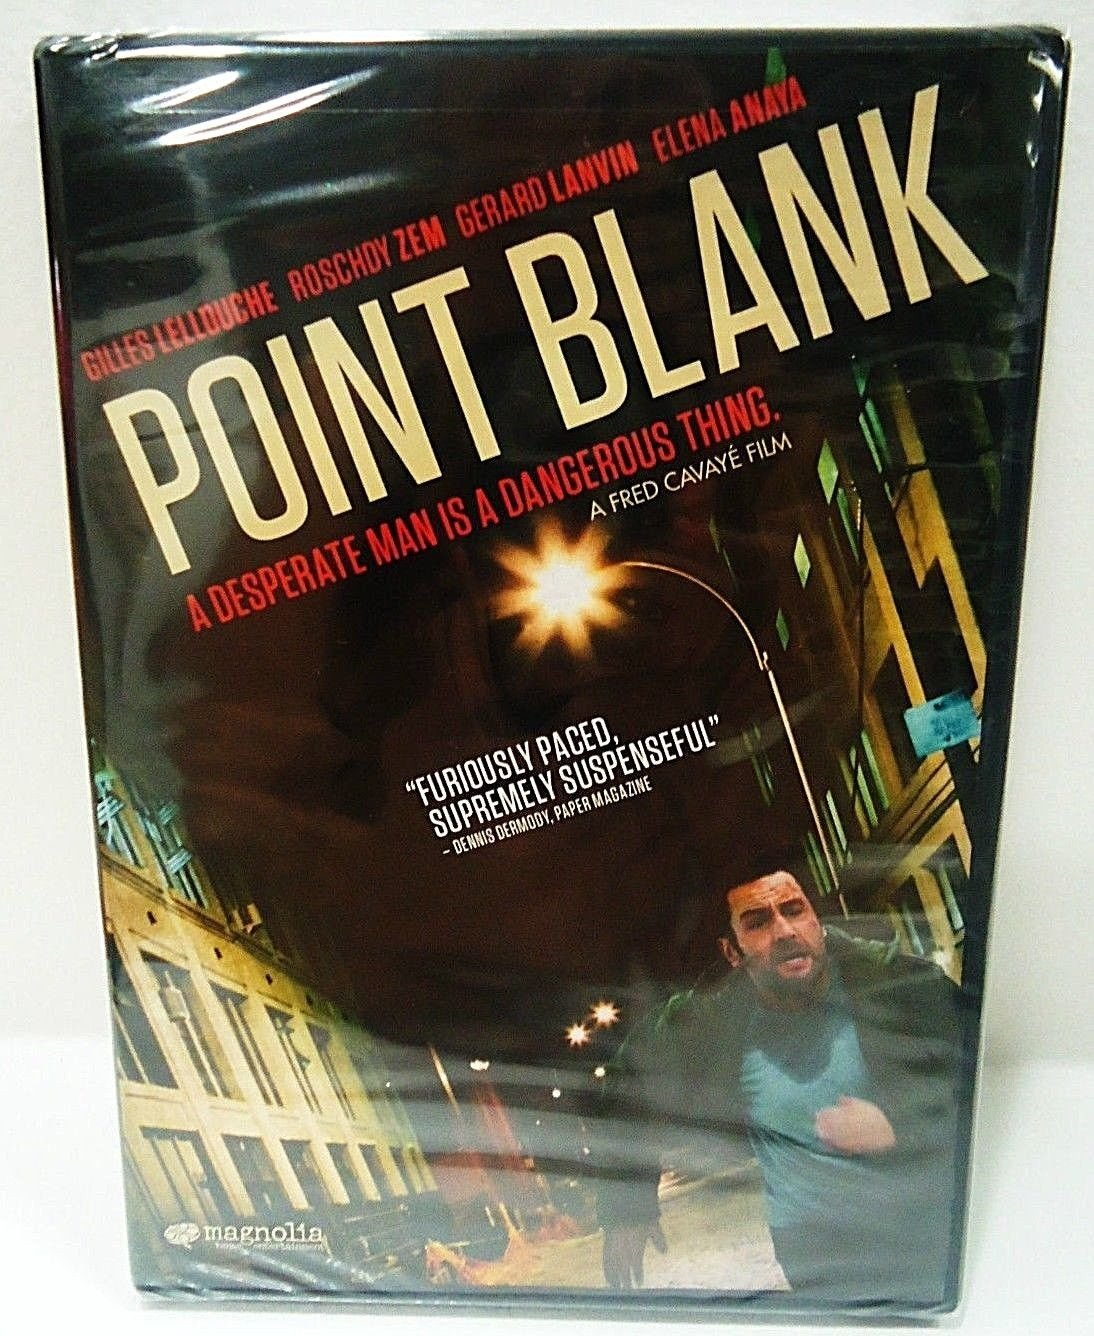 POINT BLANK - DVD - GILLES LELLOUCHE - BRAND NEW - SEALED - ACTION - MOVIE